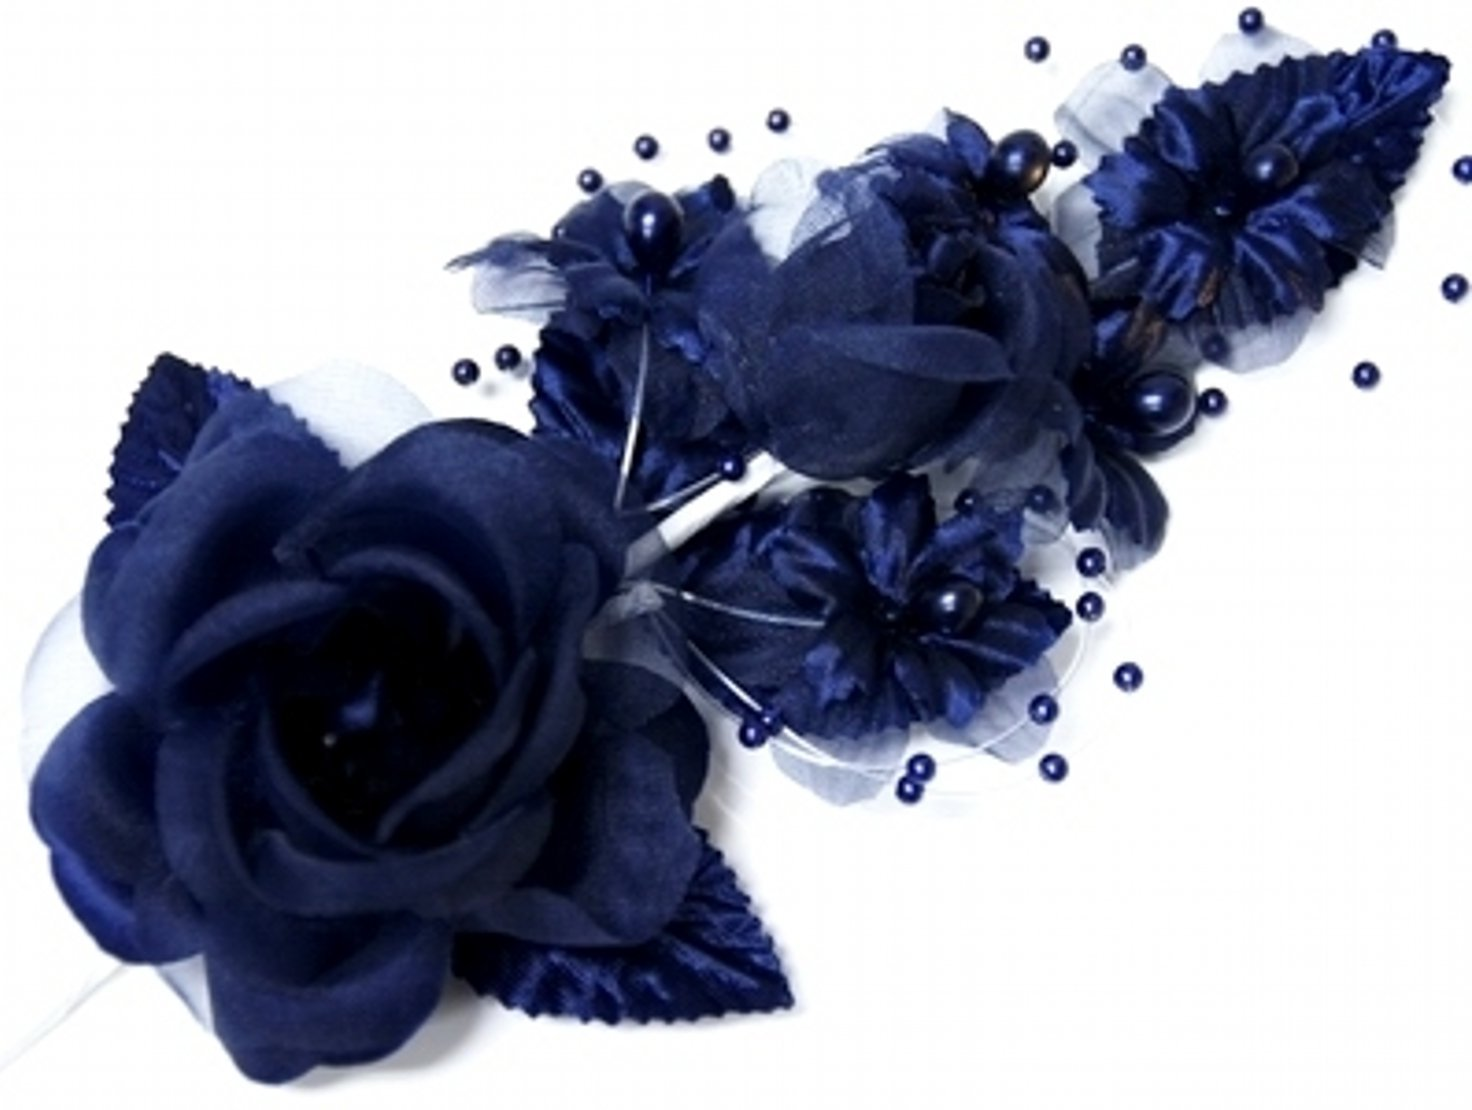 Cheap navy silk flowers find navy silk flowers deals on line at get quotations 3 navy blue silk flowers pearl organza corsages 5x 25 with a mightylinksfo